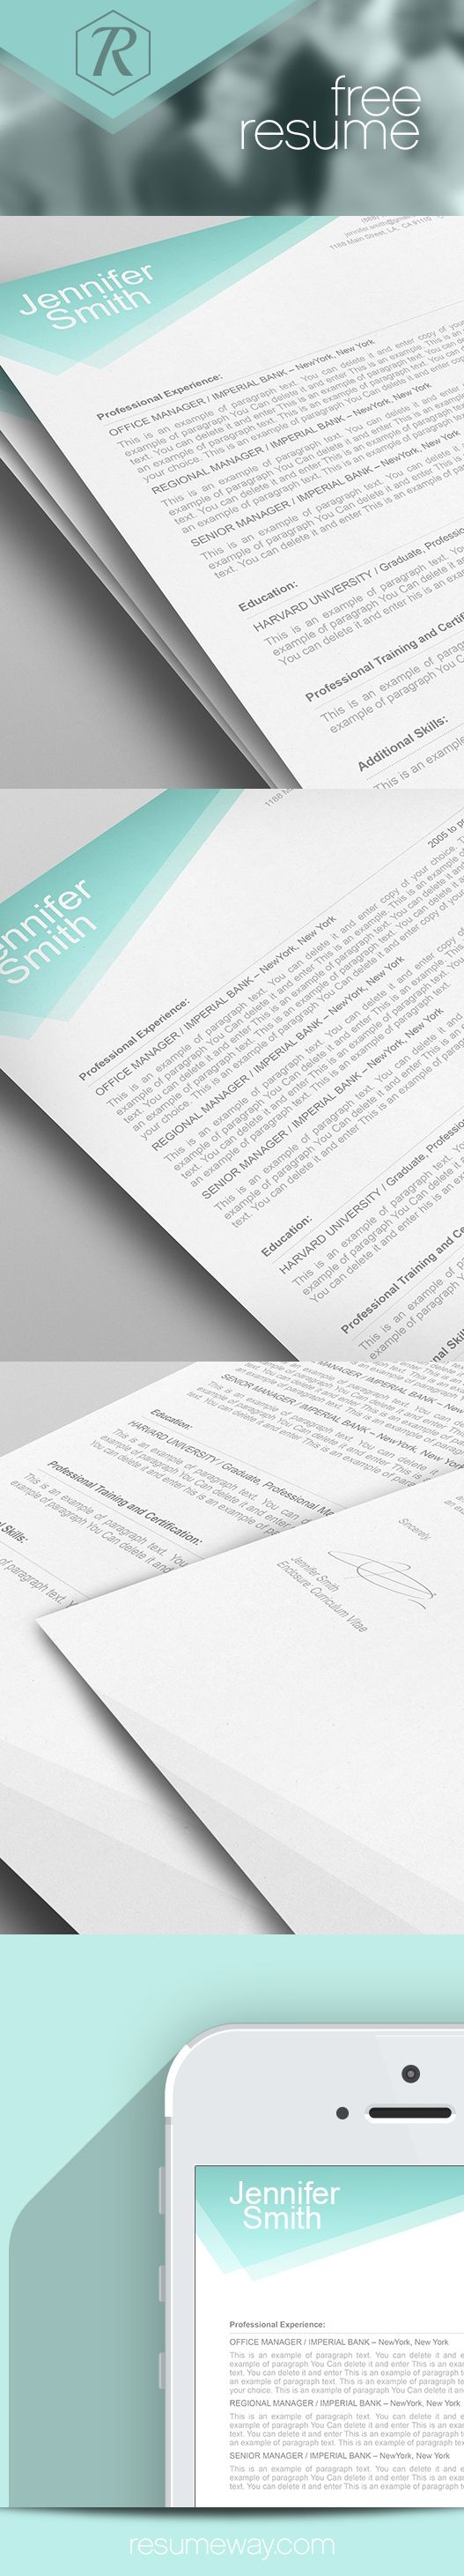 Free Resume Template 1100020 53 best I